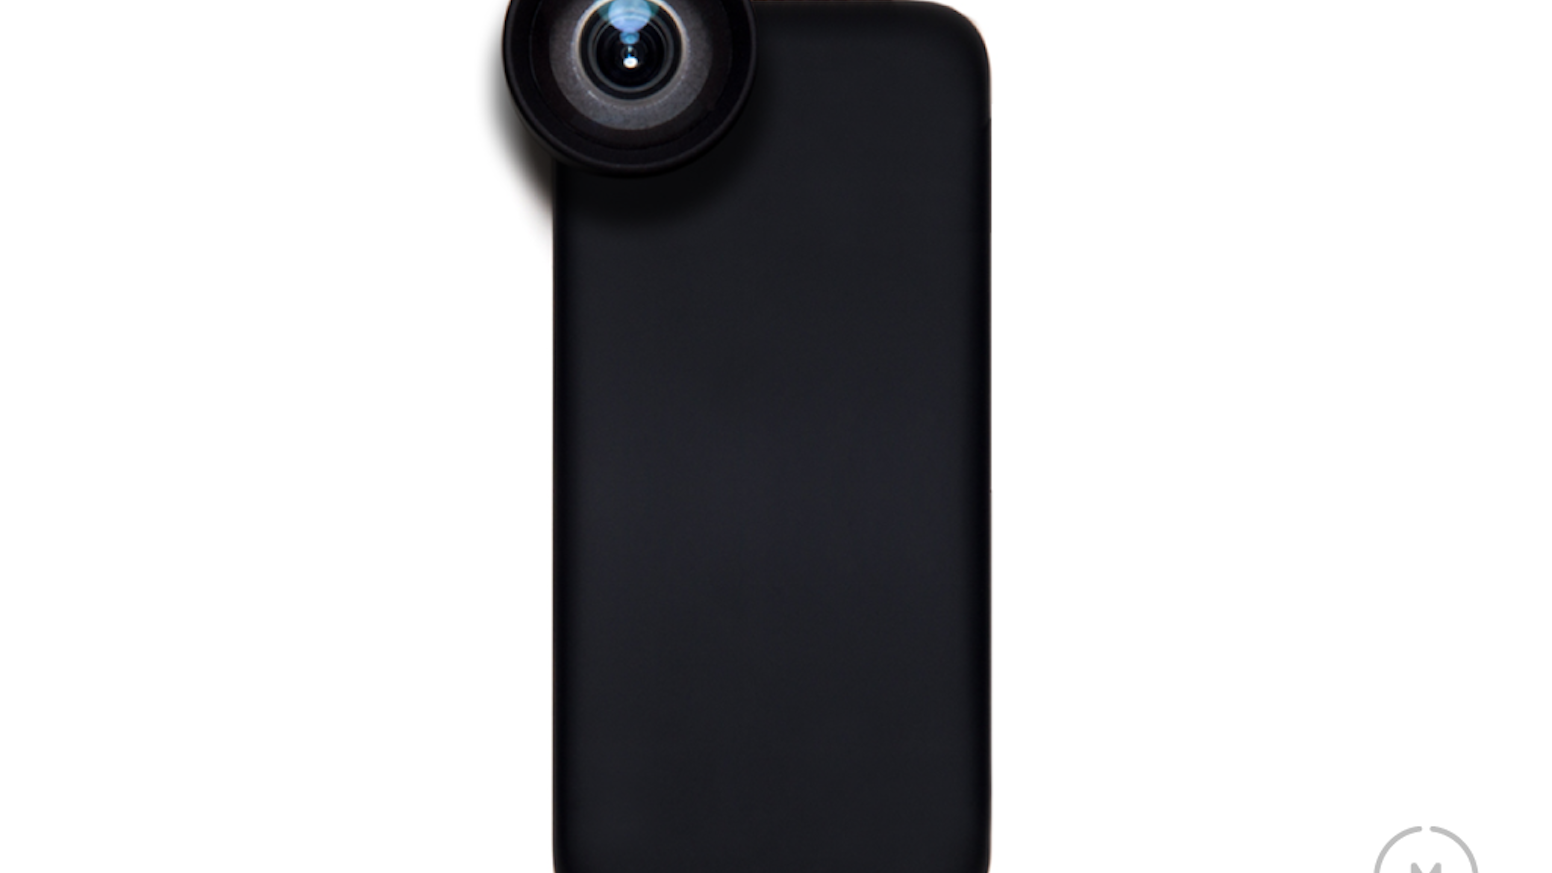 The highest quality lenses to empower mobile picture takers everywhere to capture incredible images with their phones.